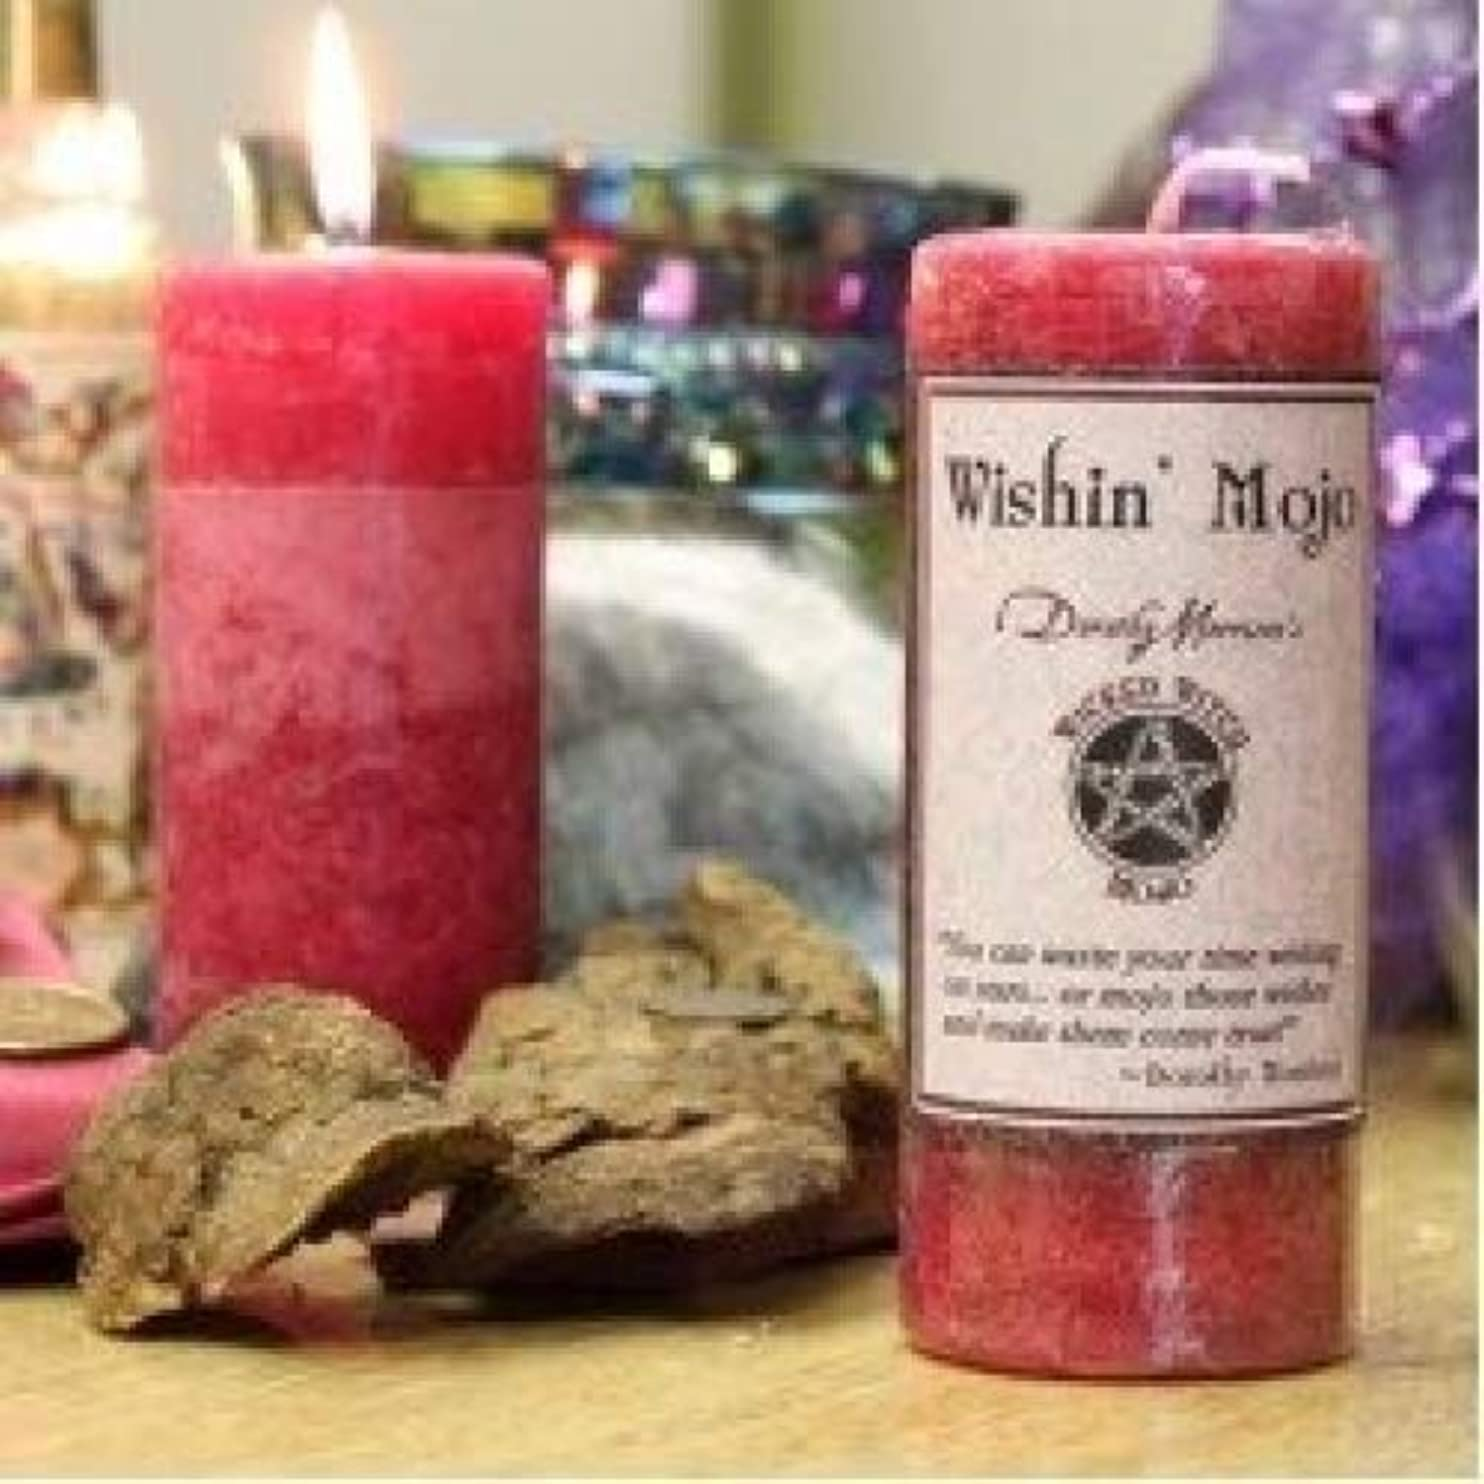 気配りのある振るロックWicked Witch Mojo Wishin Mojo Candle by Dorothy Morrison